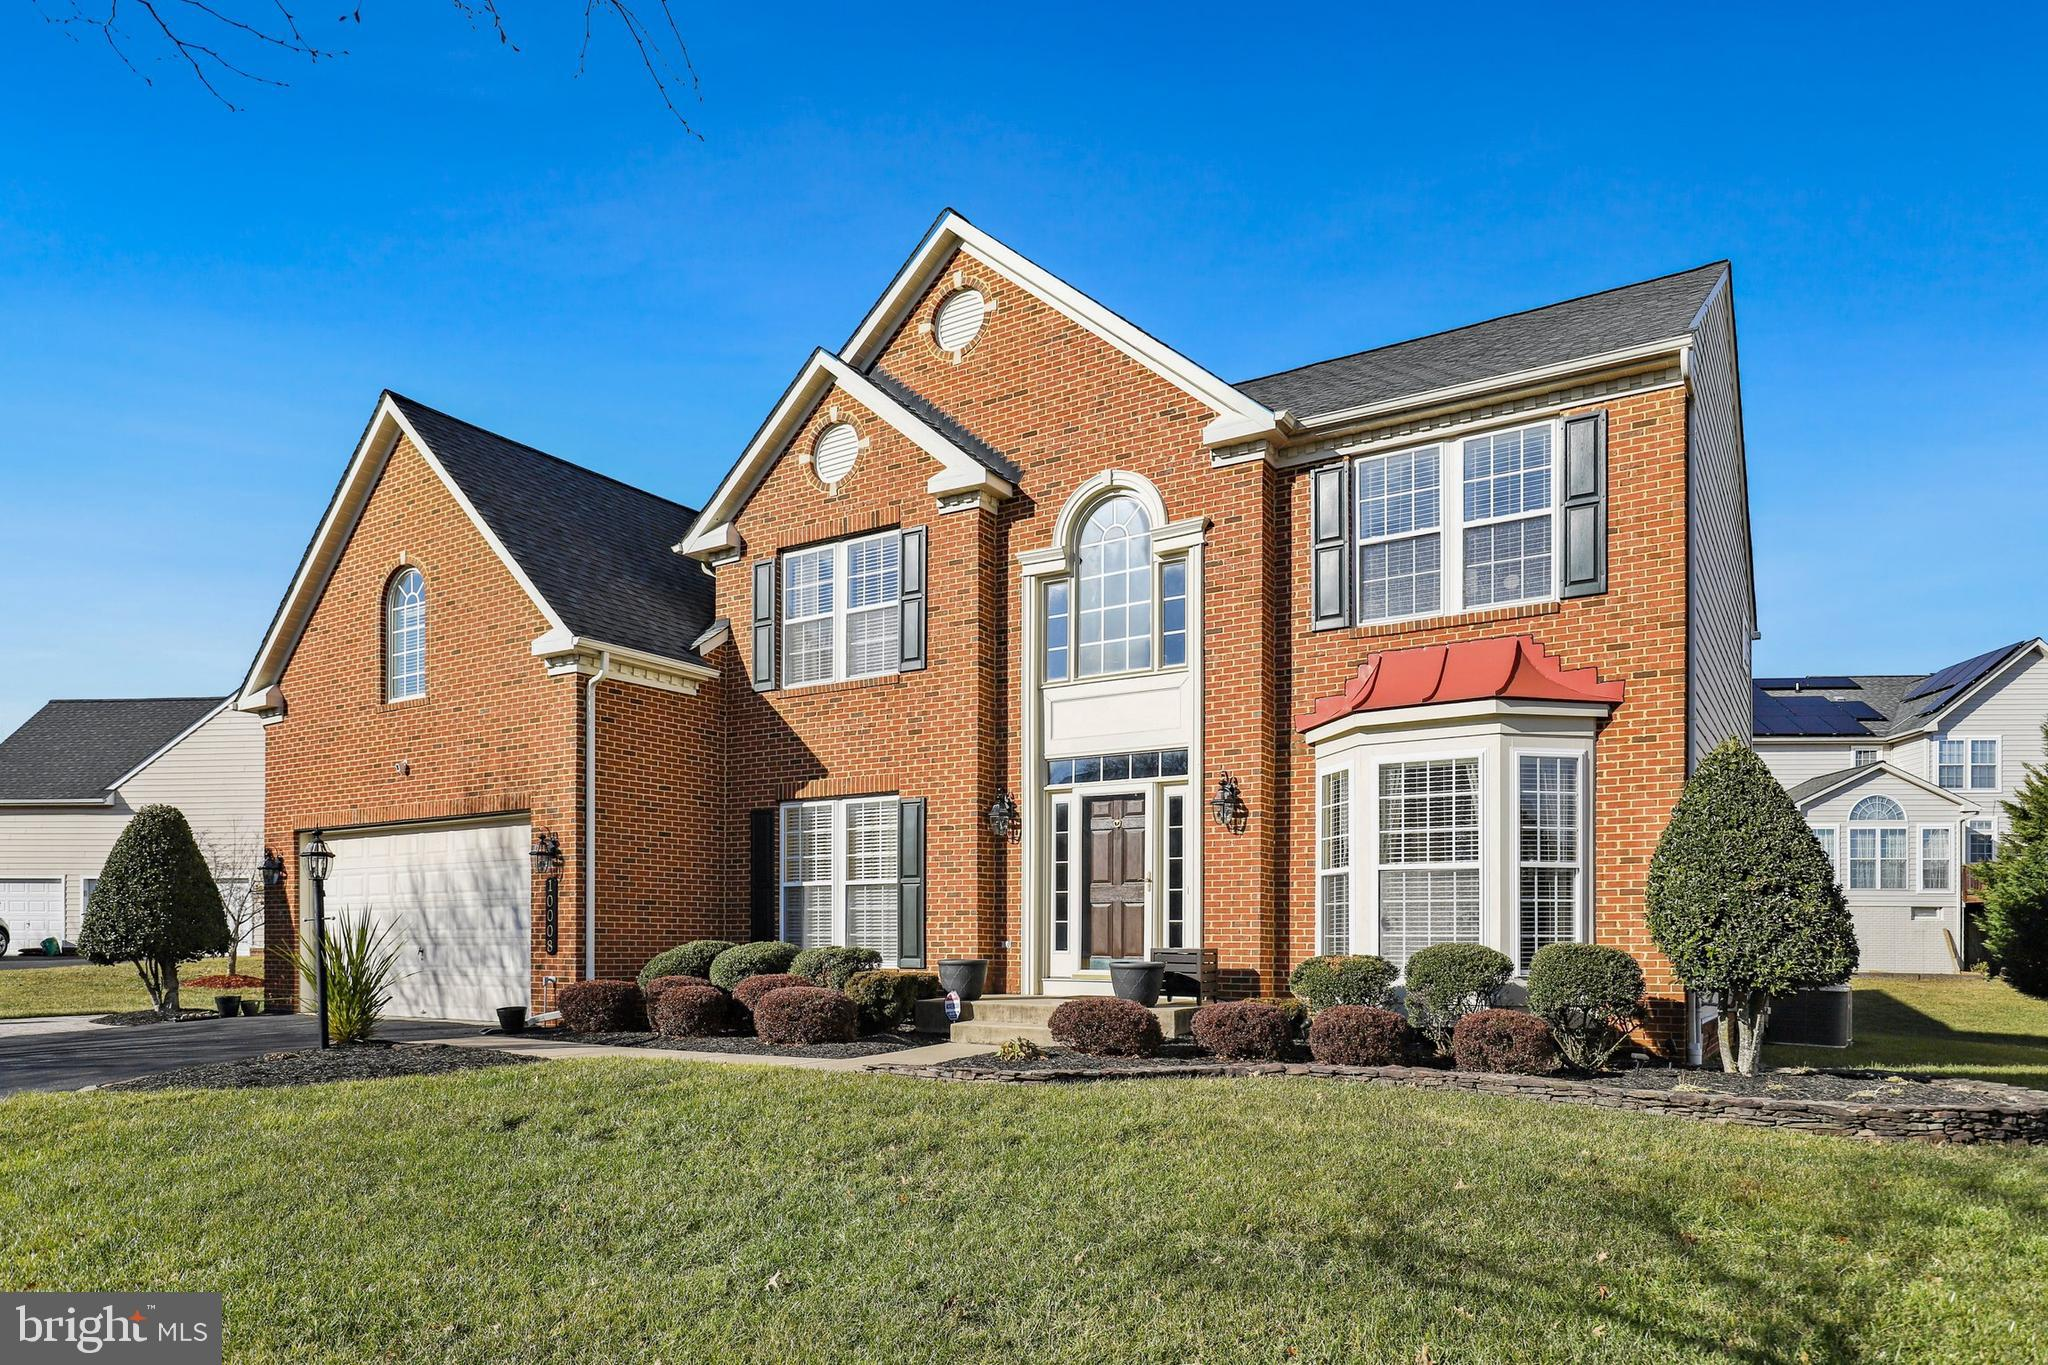 Remarks/Highlights: Fall in love with this impressive and stunning colonial in the heart of it all!